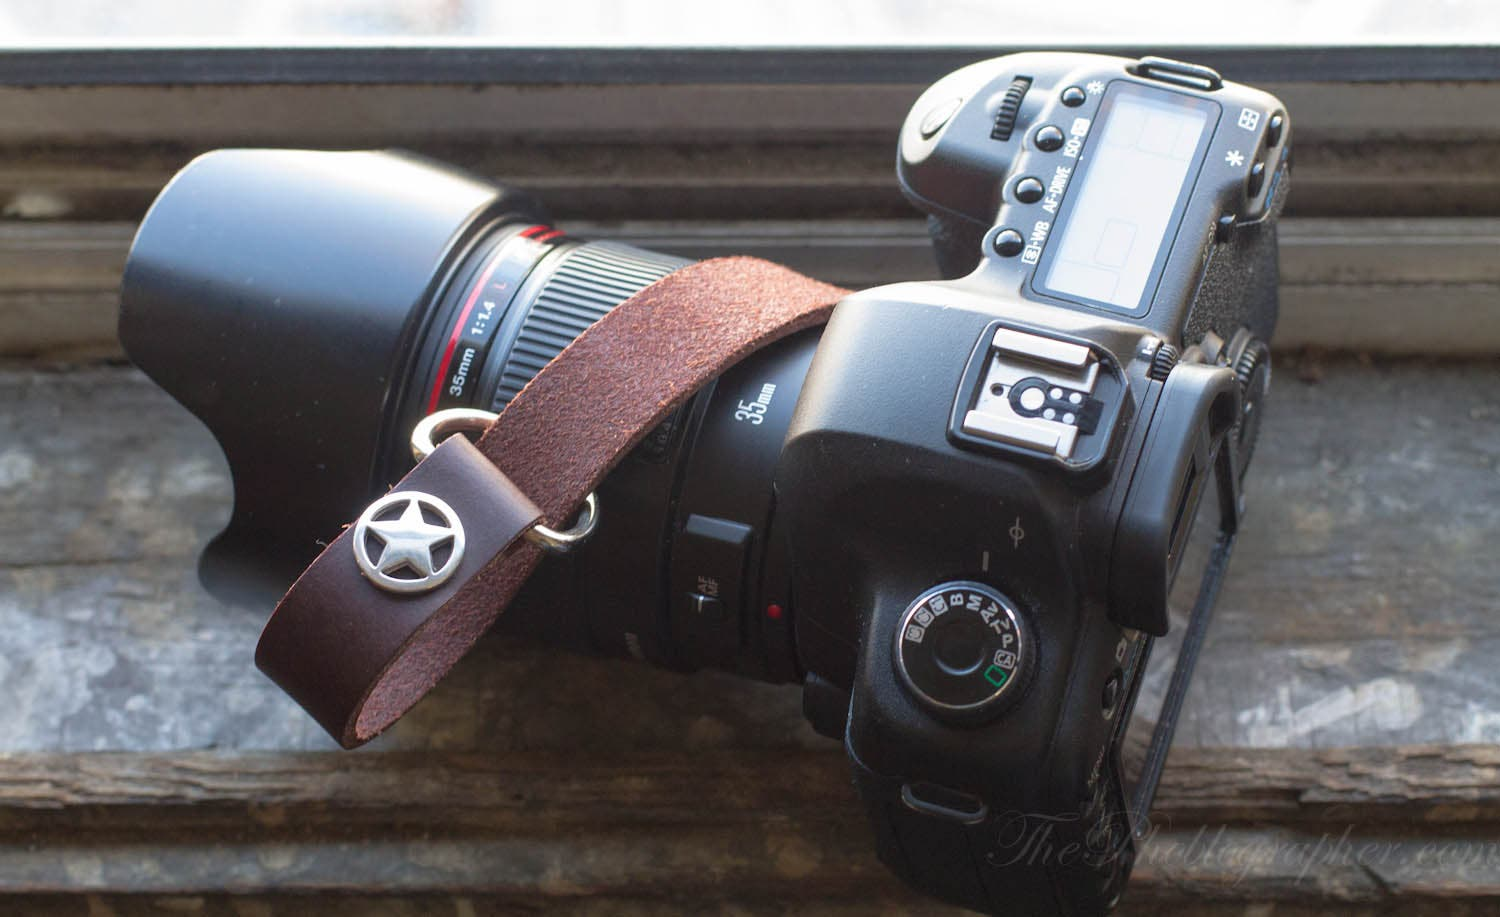 Hands On: HoldFast Gear Camera Leash Designer Wrist Strap